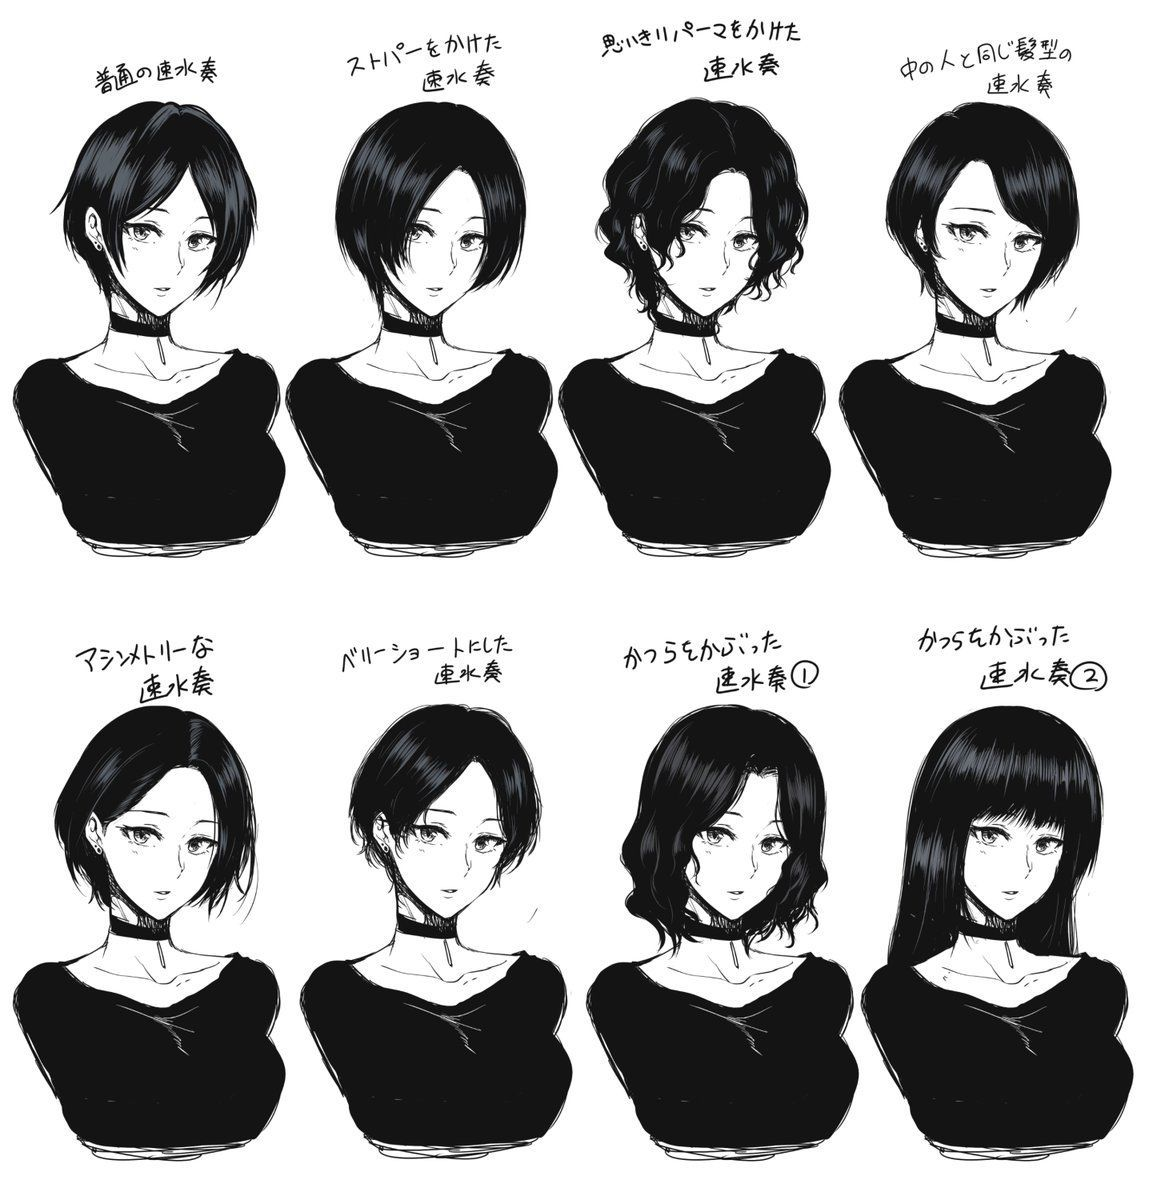 Drawing Hairstyles For Your Characters Manga hair, How